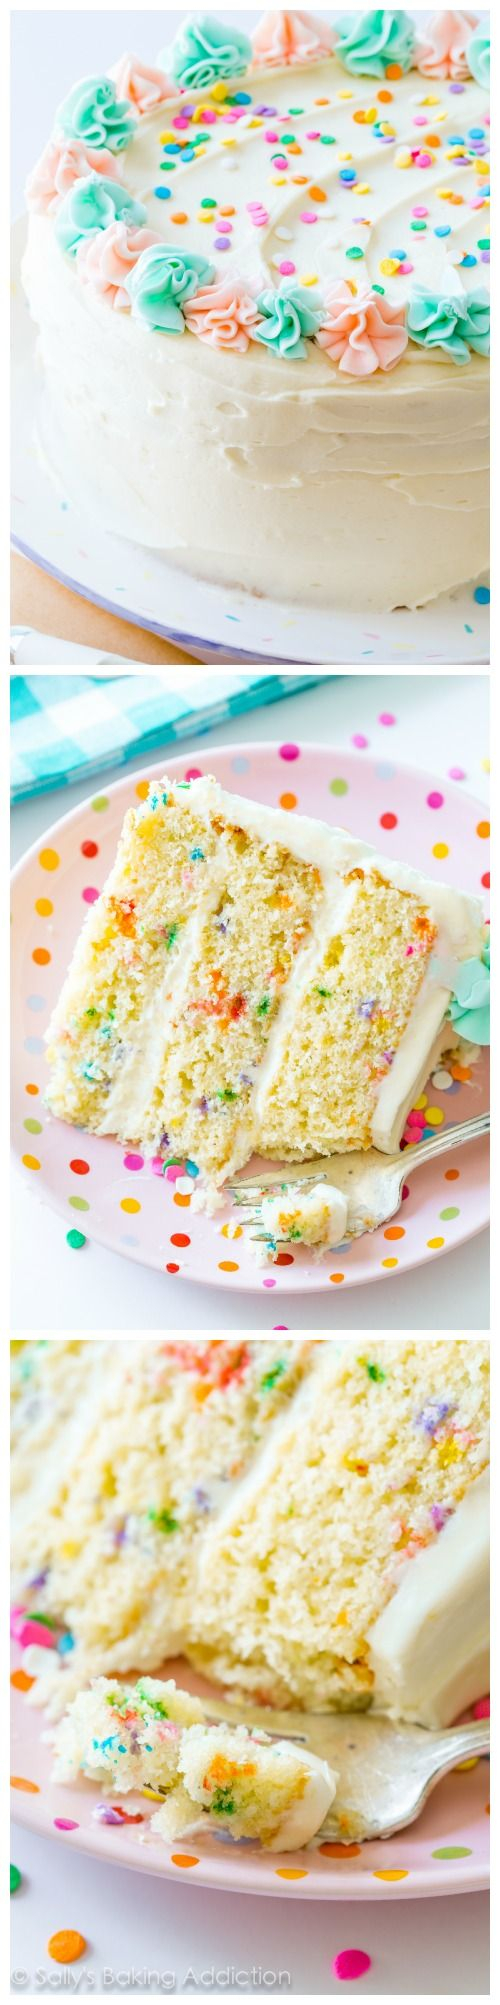 Best Birthday Cake Flavors The One And Only Funfetti Cake Recipe You Need Best Of Pinterest